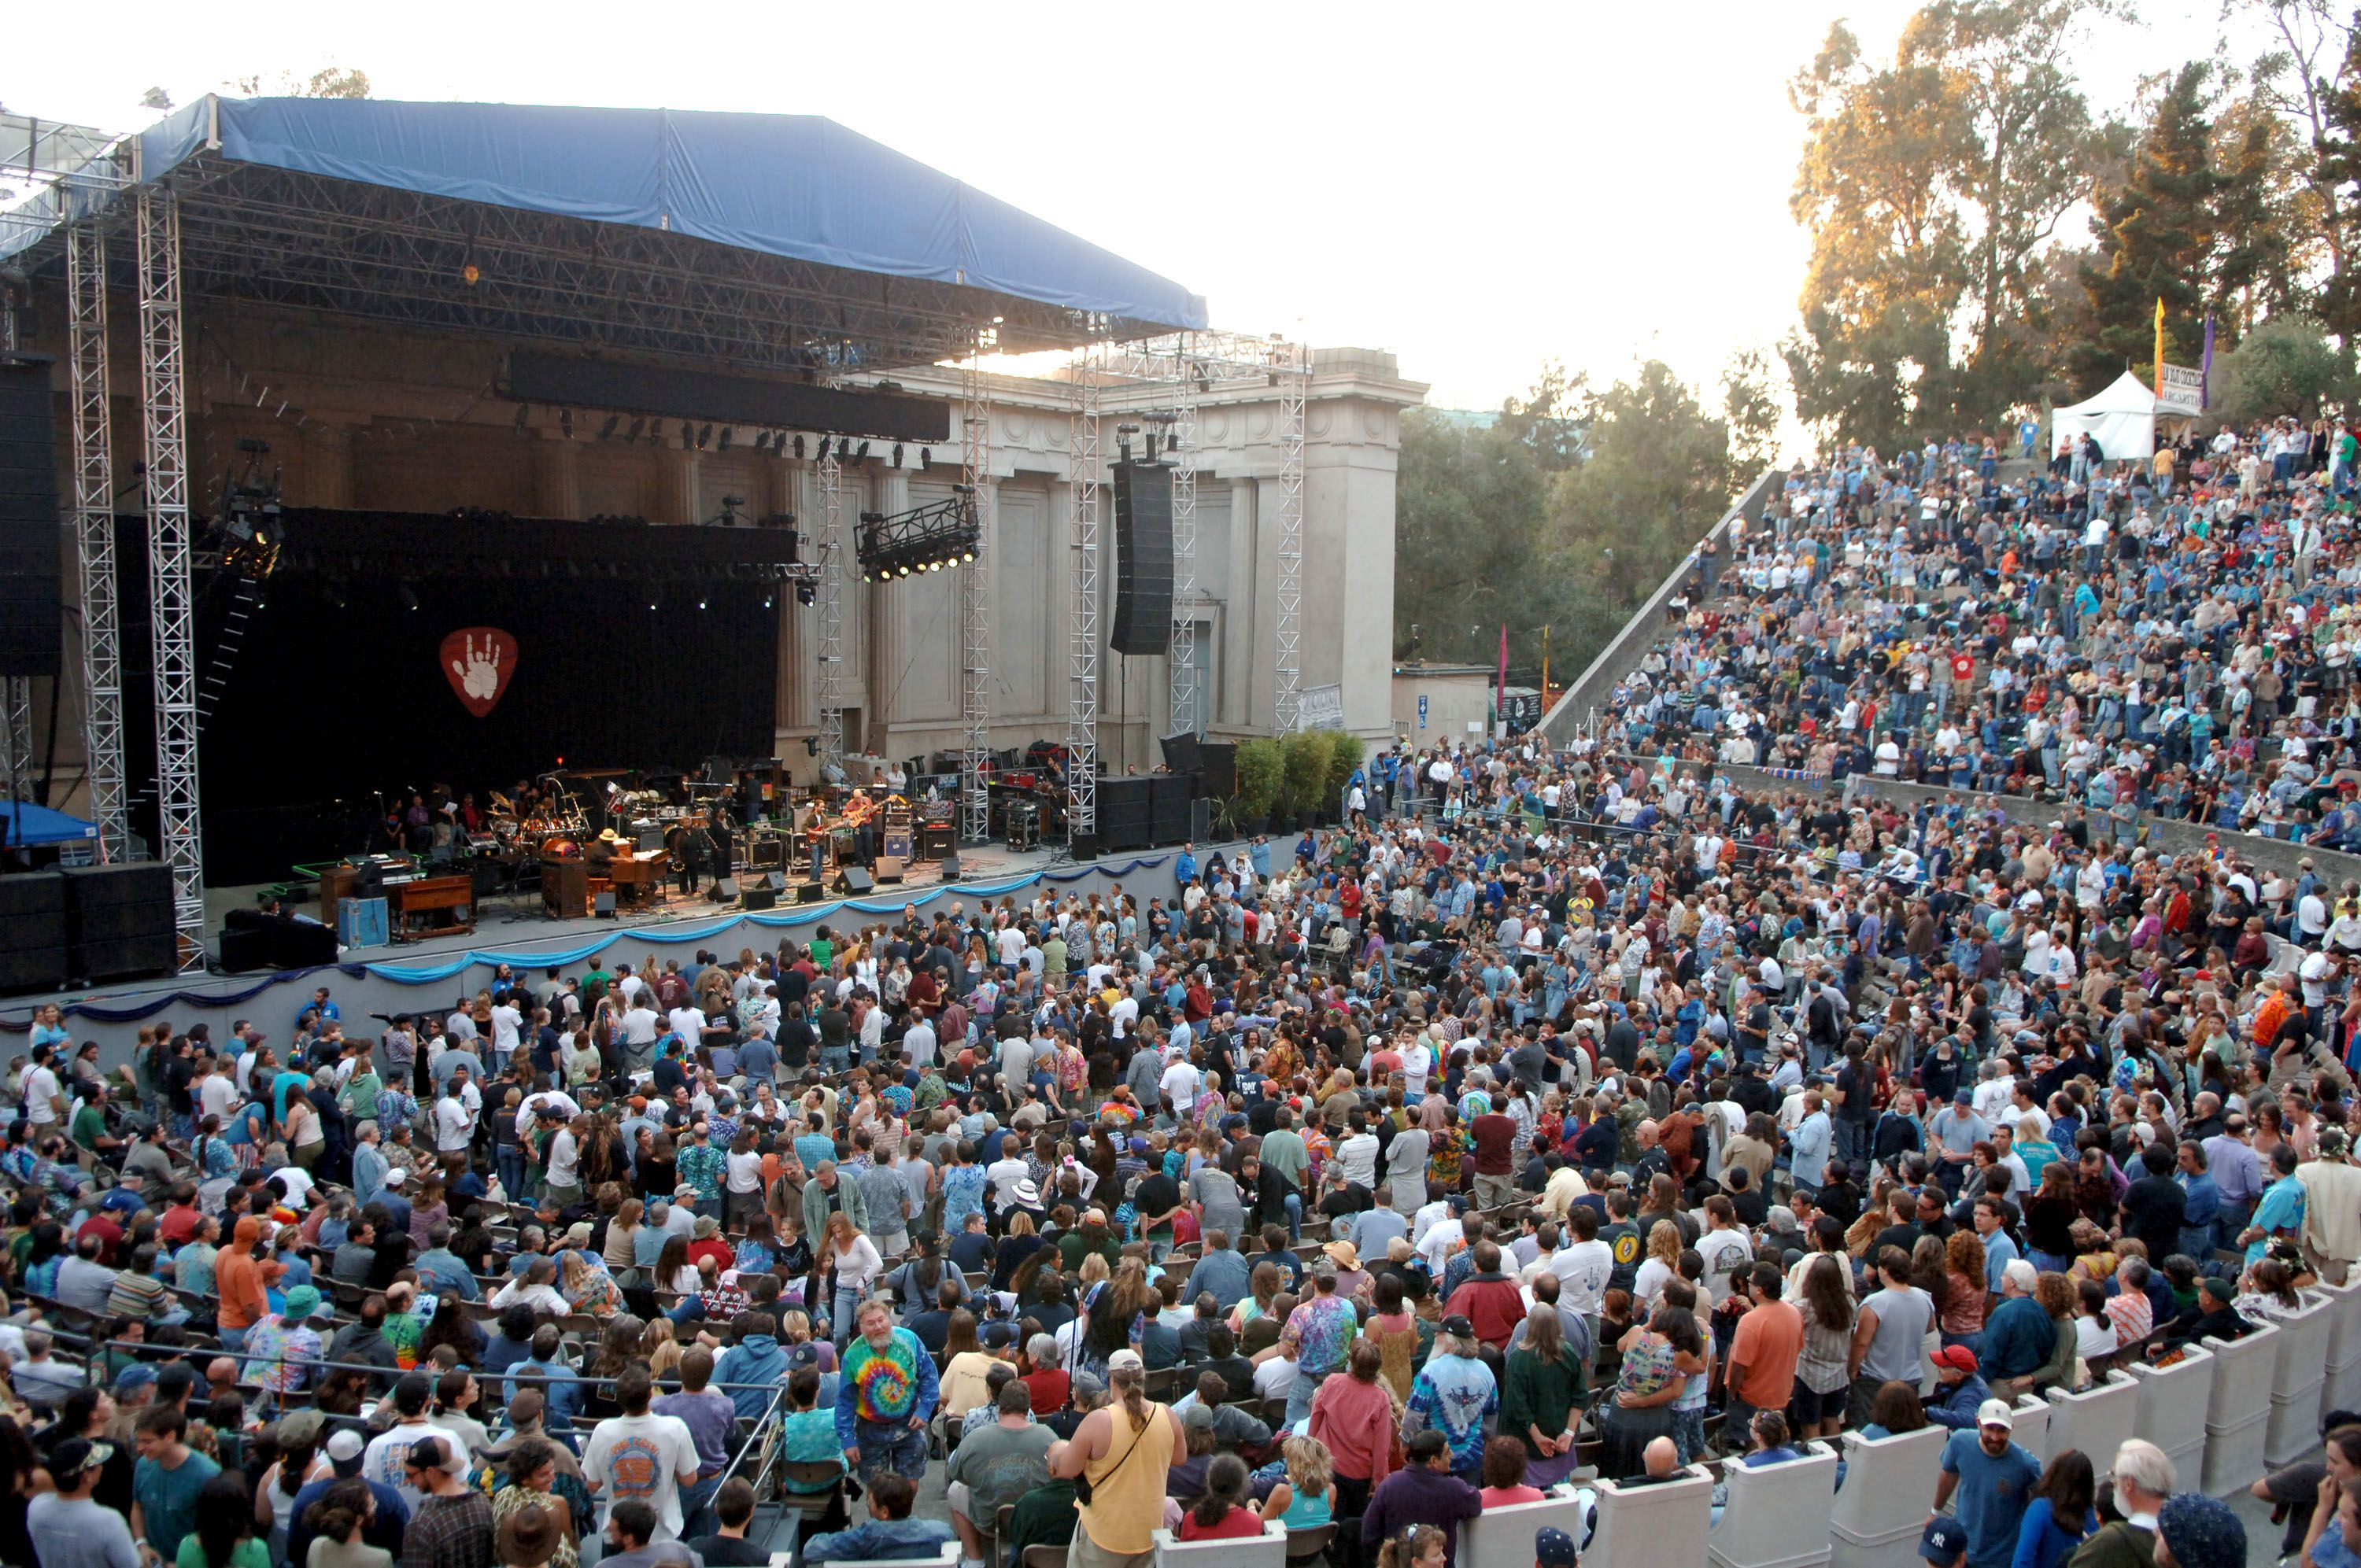 Berkeley Greek Theatre: What You Need to Know